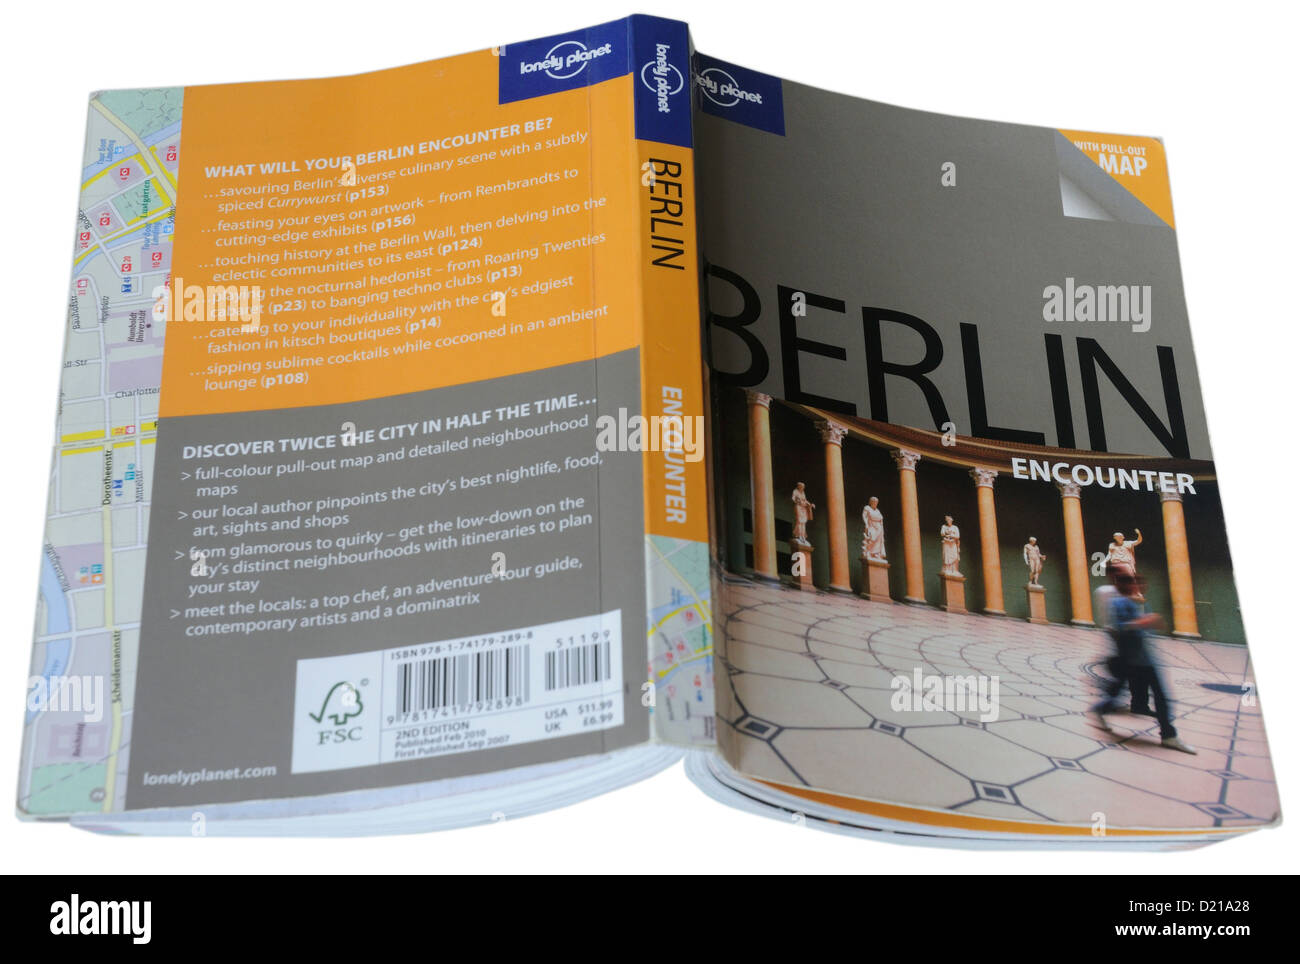 The Lonely Planet city guide to Berlin - Stock Image